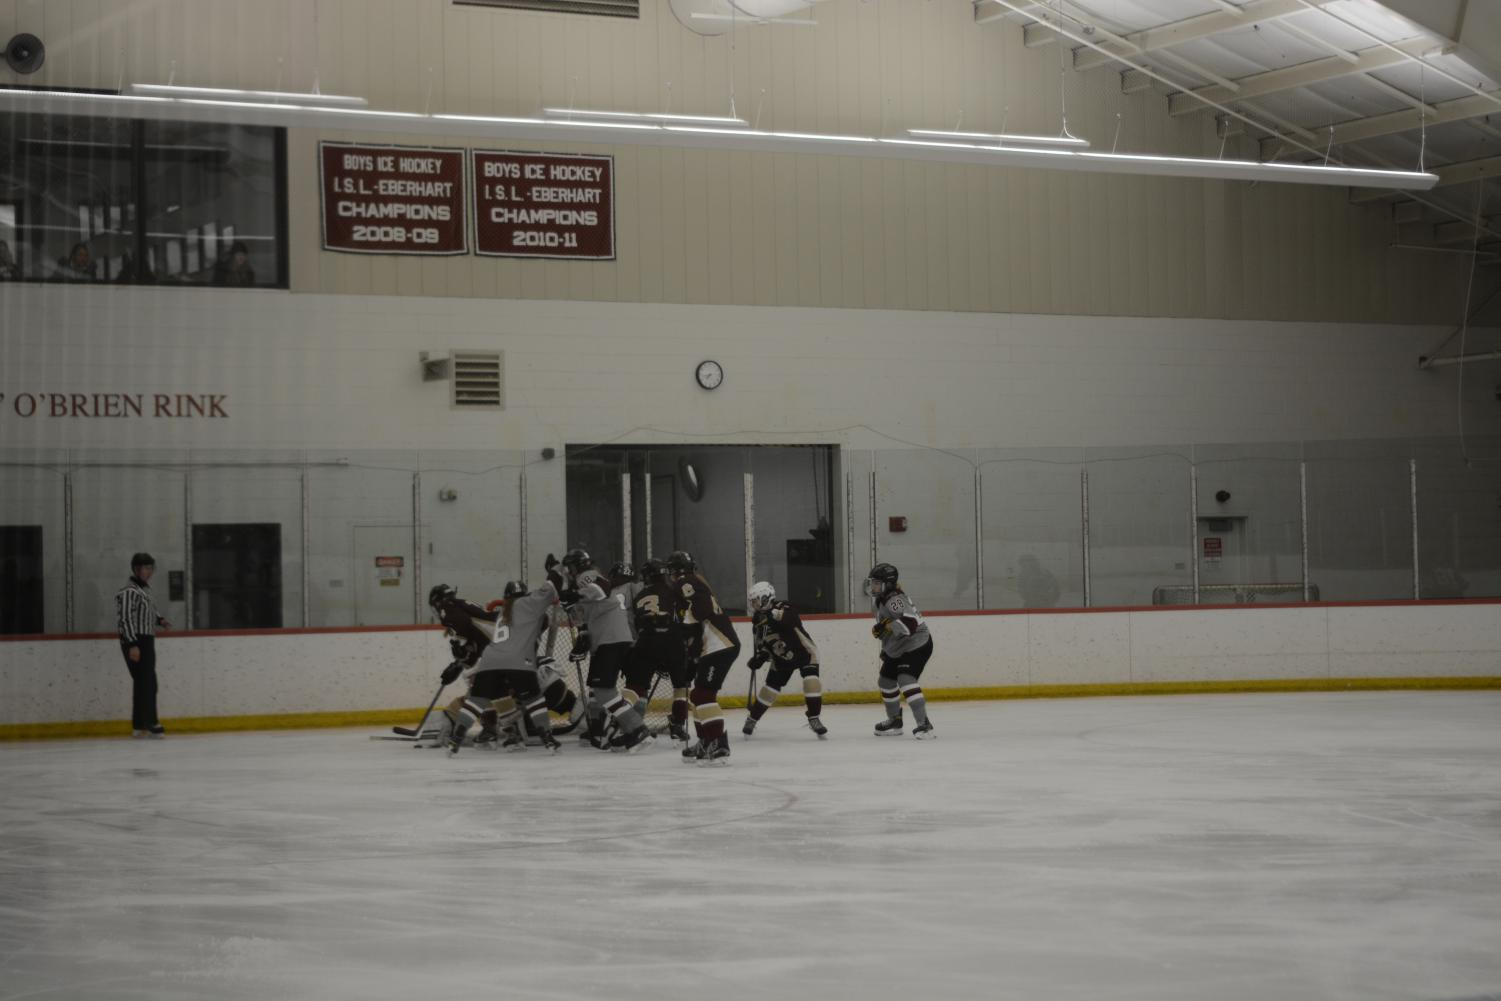 Westford+Academy+scuffles+to+get+the+puck+past+the+CC+goalie.